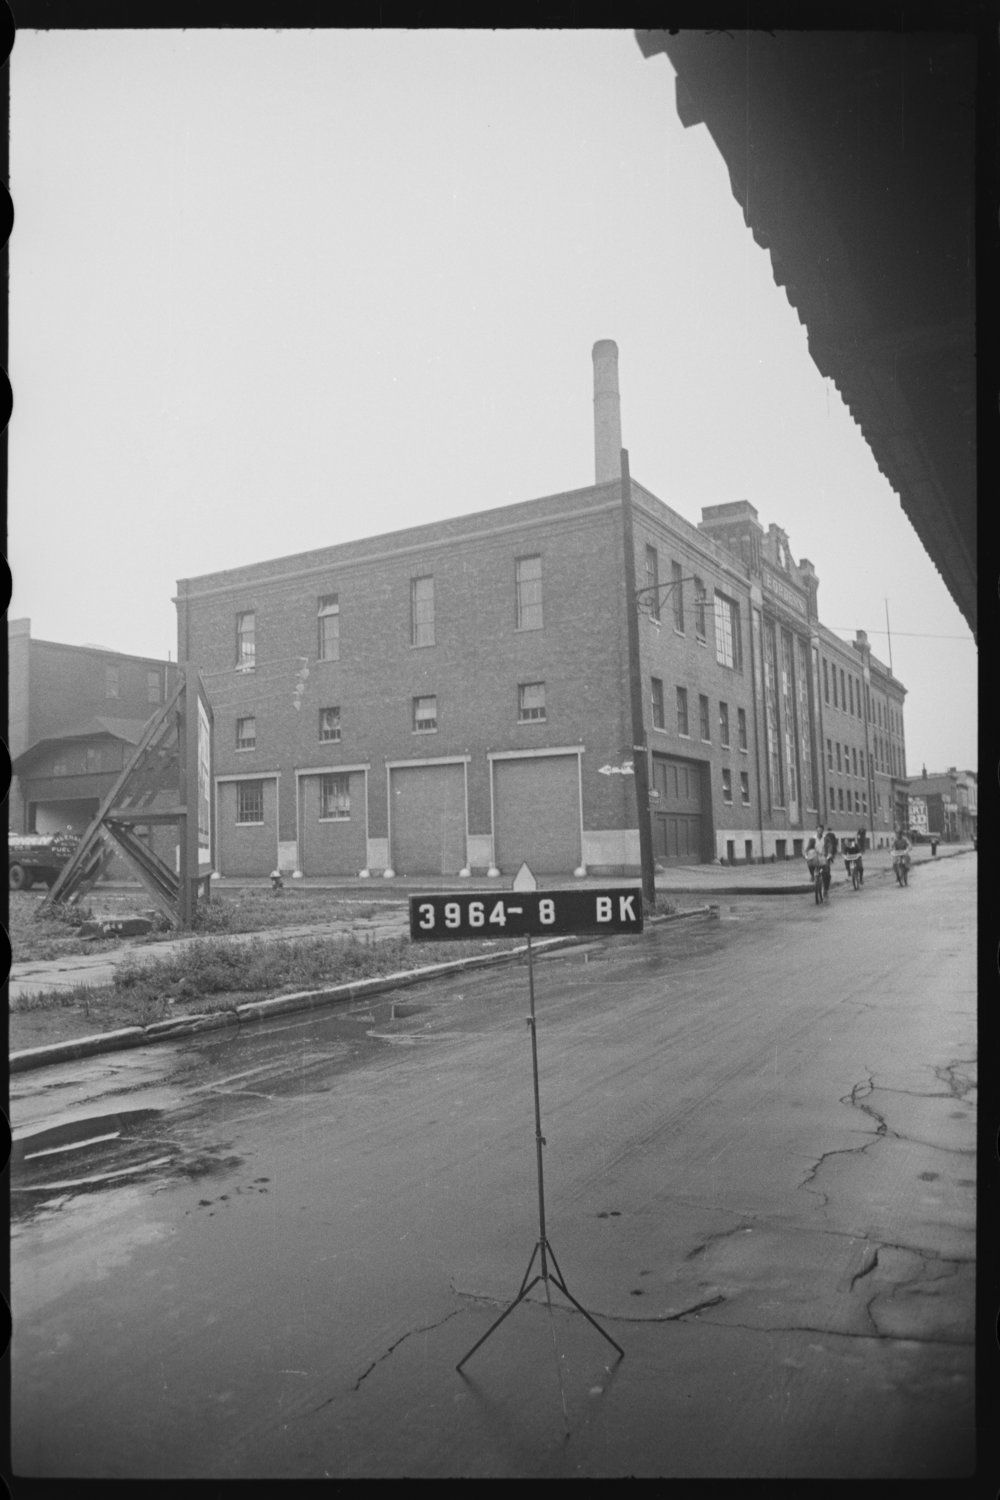 Empire State Dairy Company buildings – the earliest of which was built in 1906-1907. 1940s Tax Photo Collection, NYC Municipal Archives.